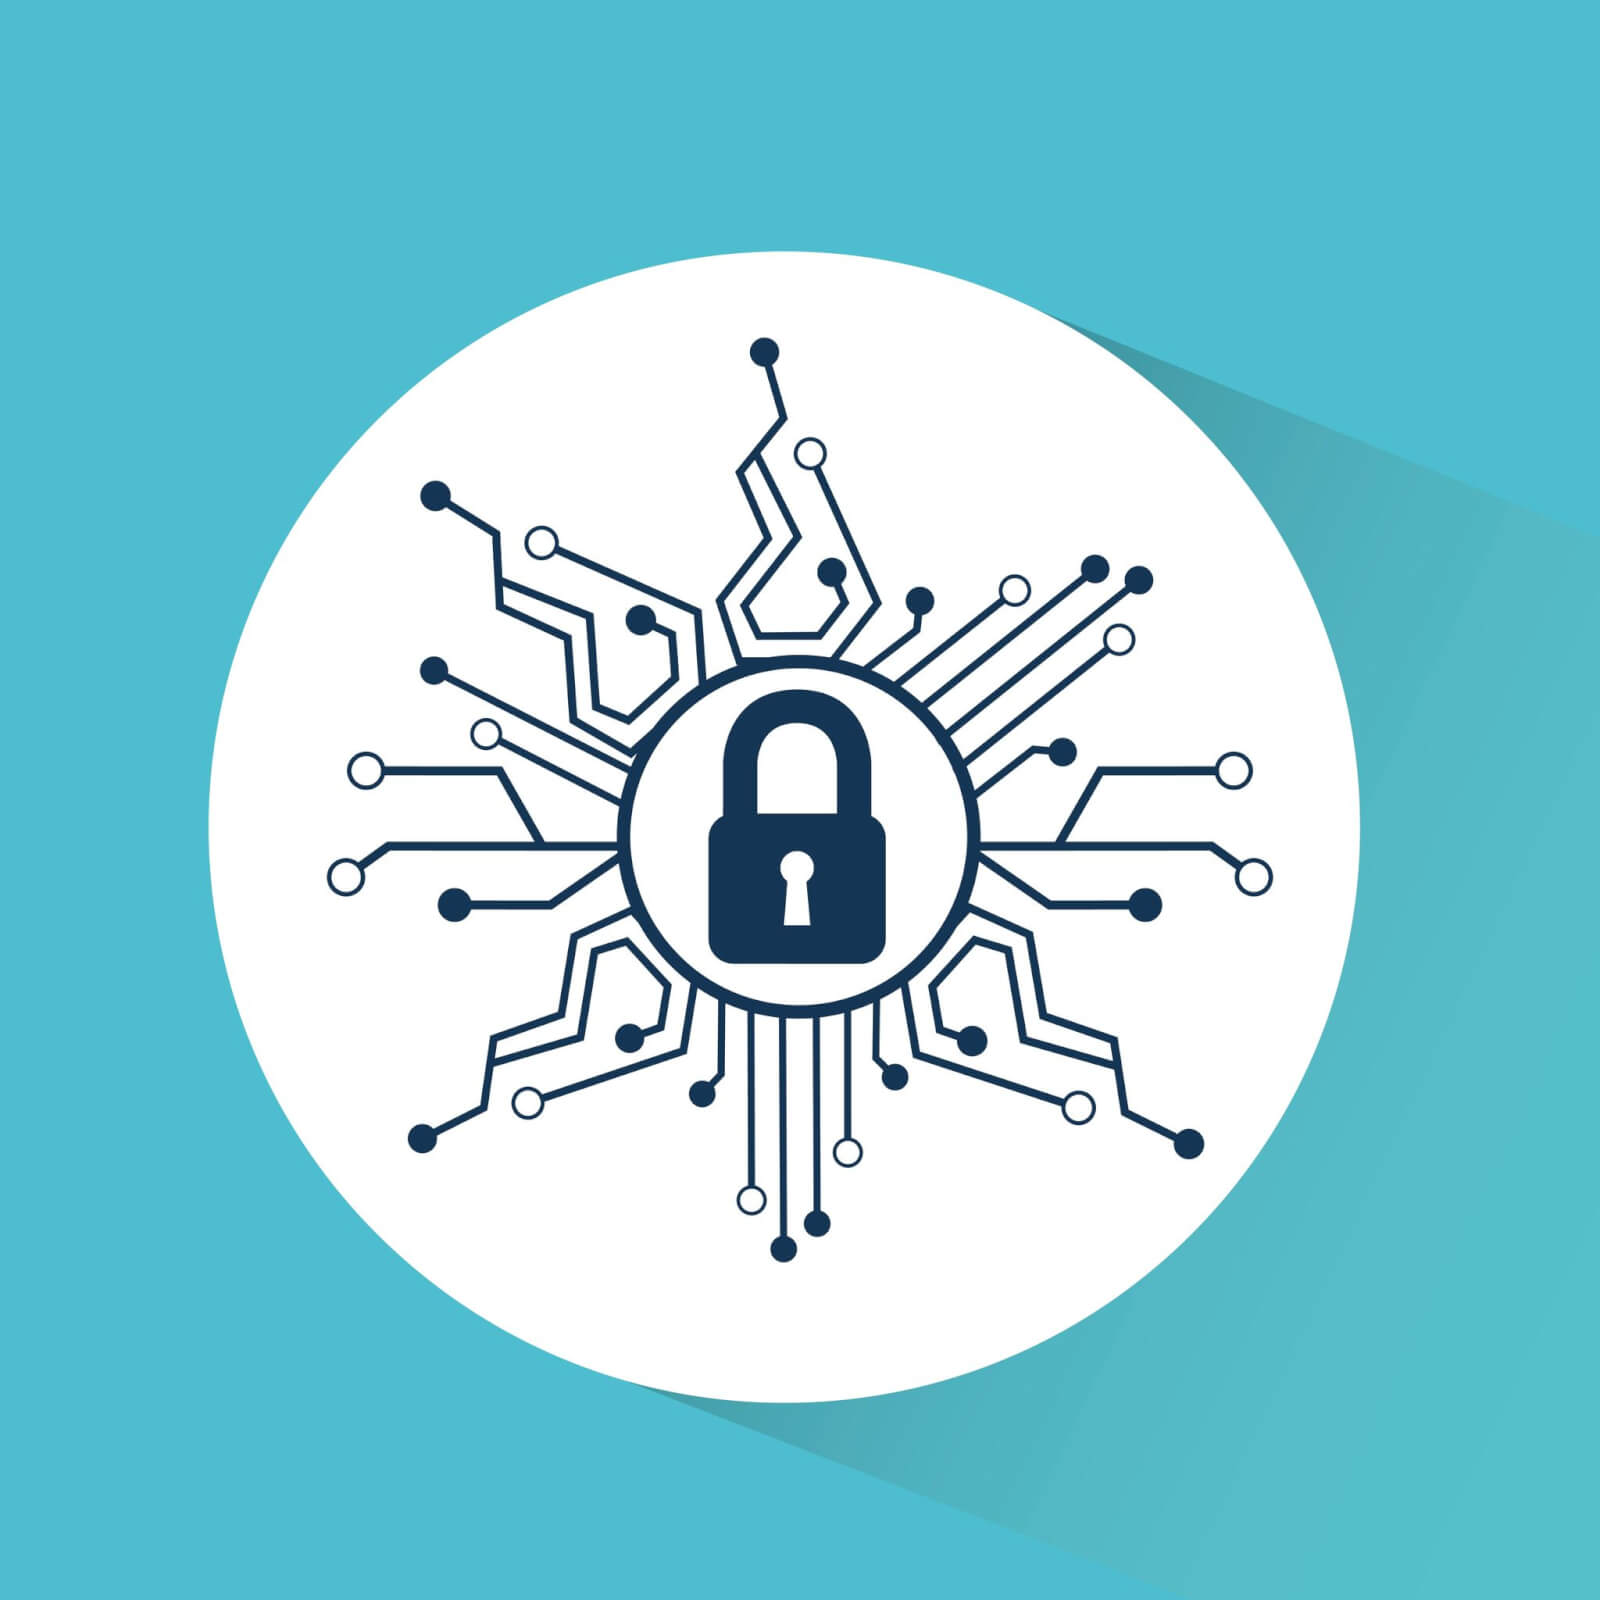 IoT Security, Internet of Things Security